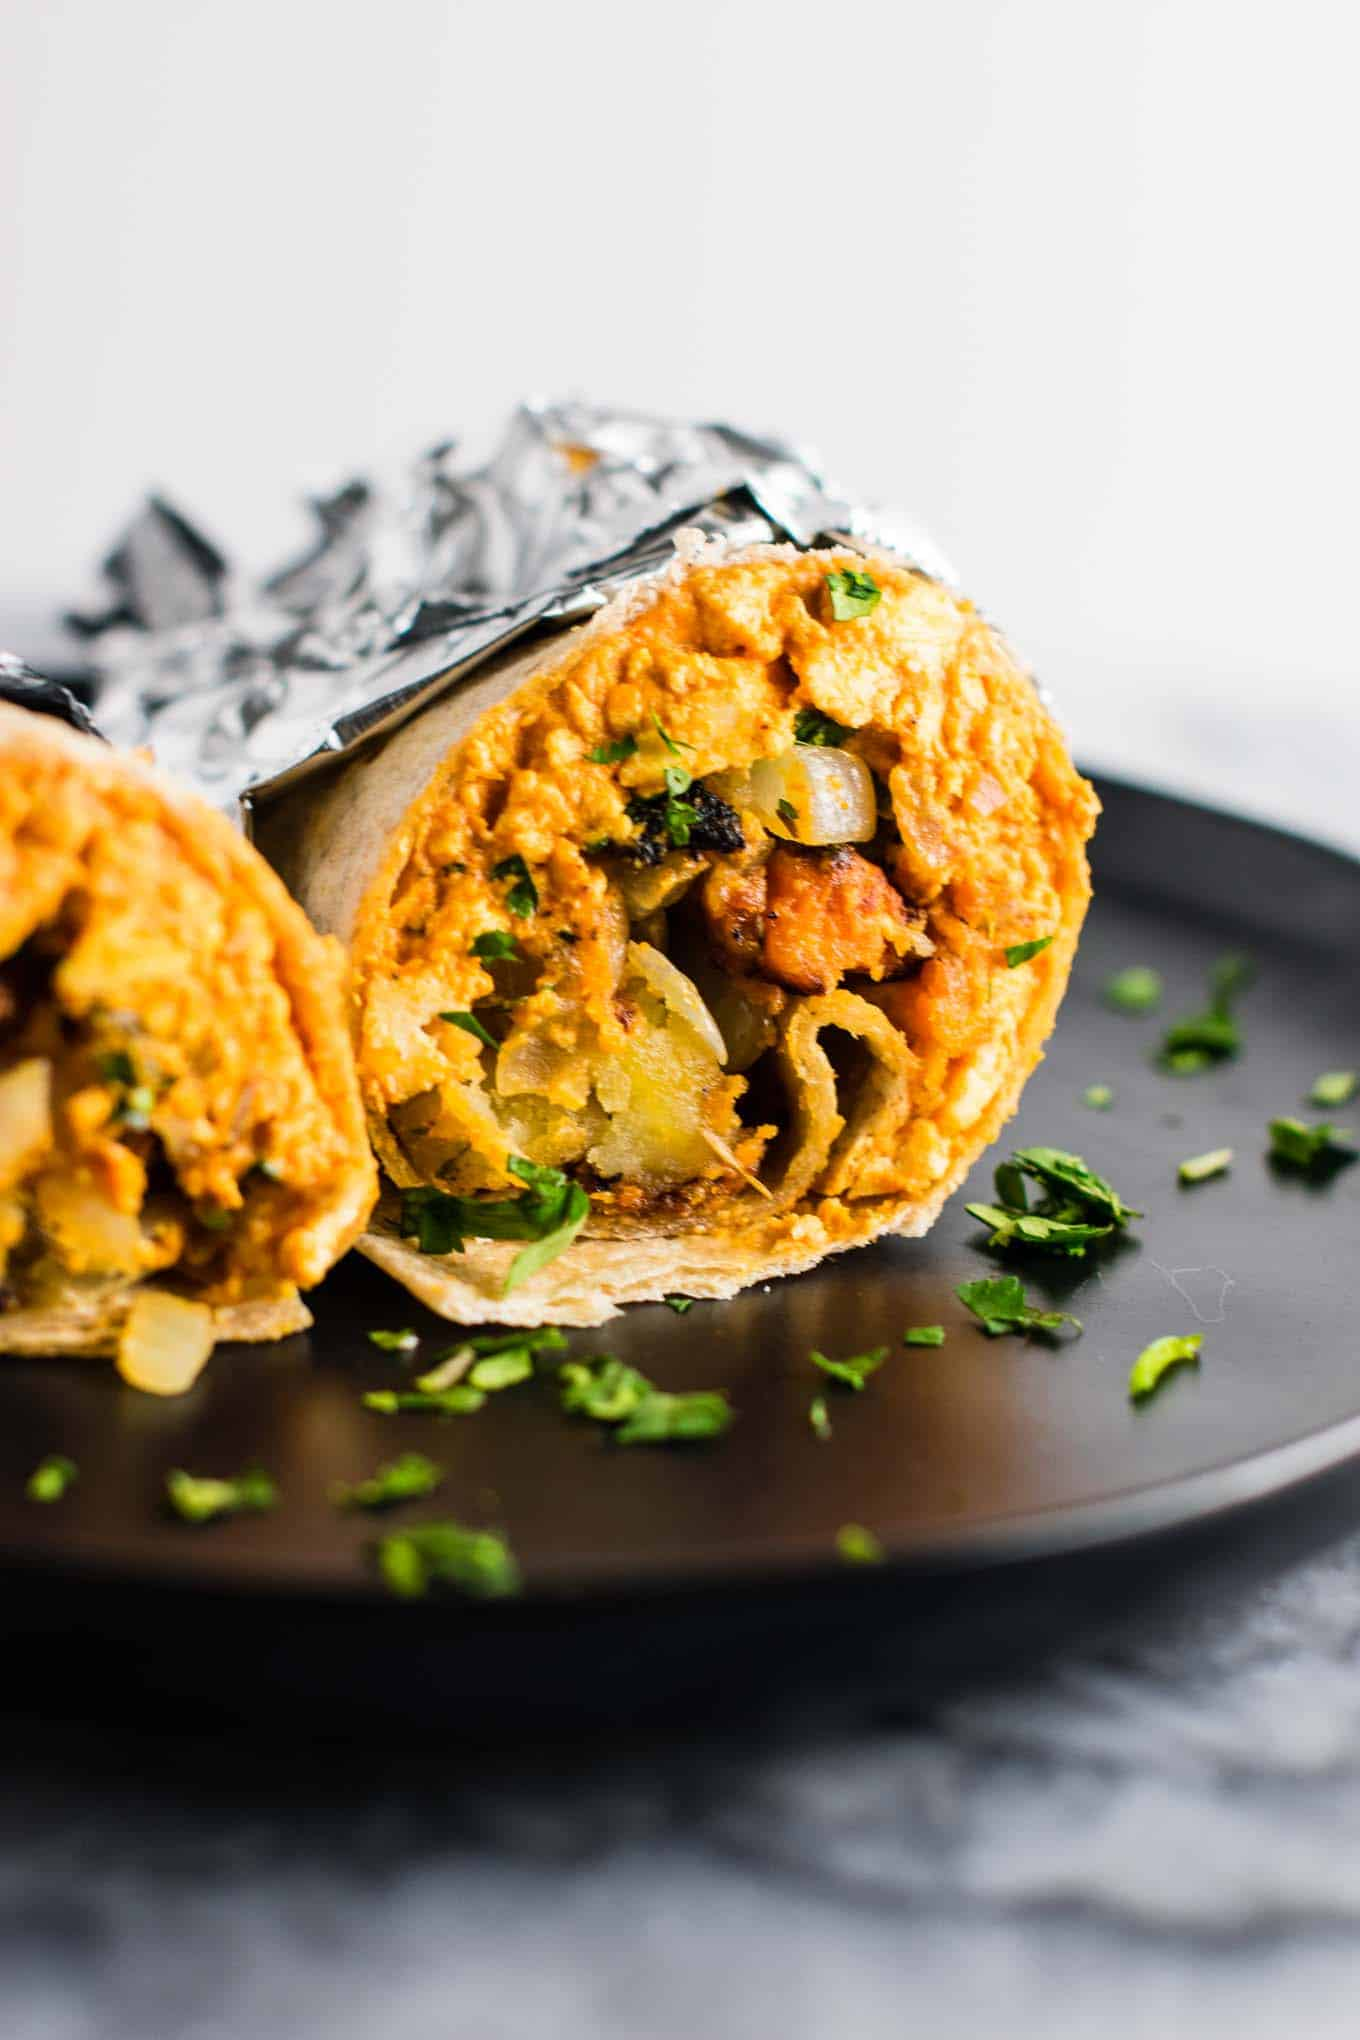 vegan burrito - vegetarian breakfast ideas for bodybuilding